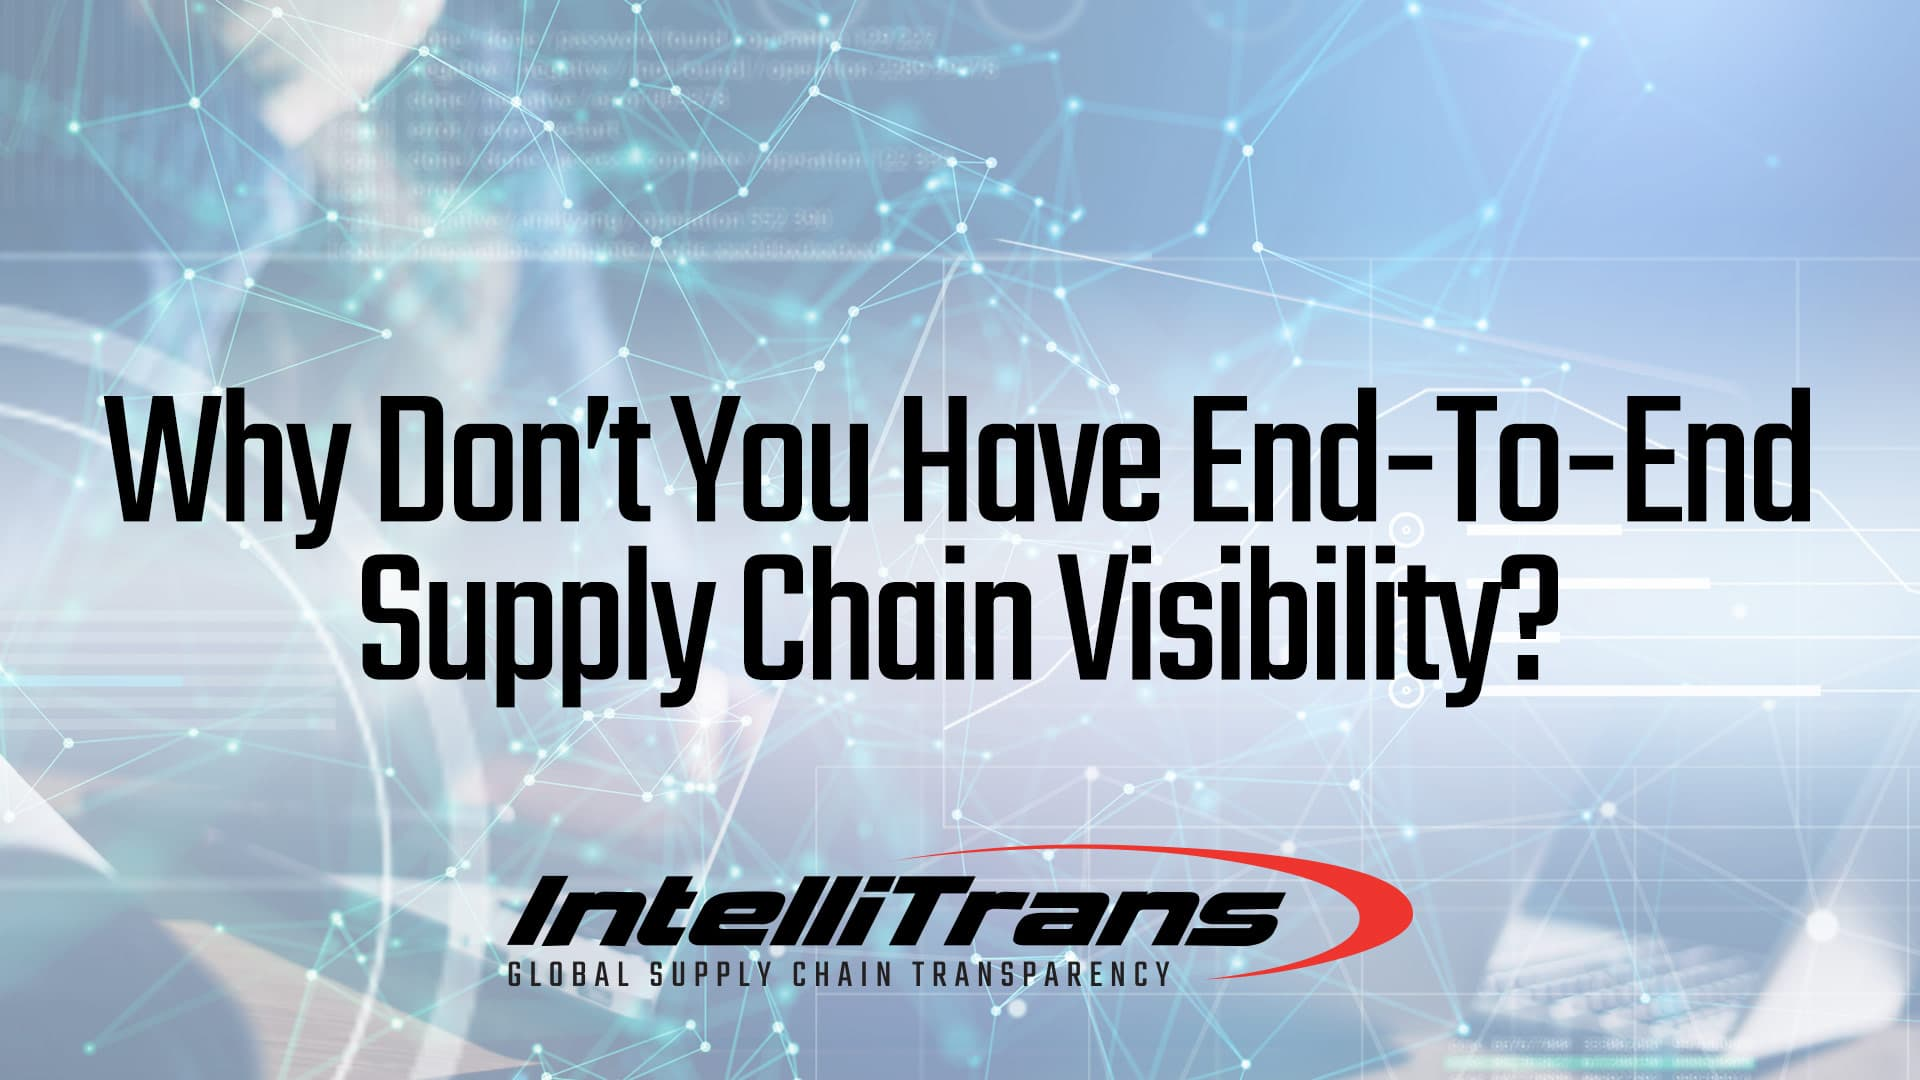 Why Don't You Have End-to-End Supply Chain Visibility?